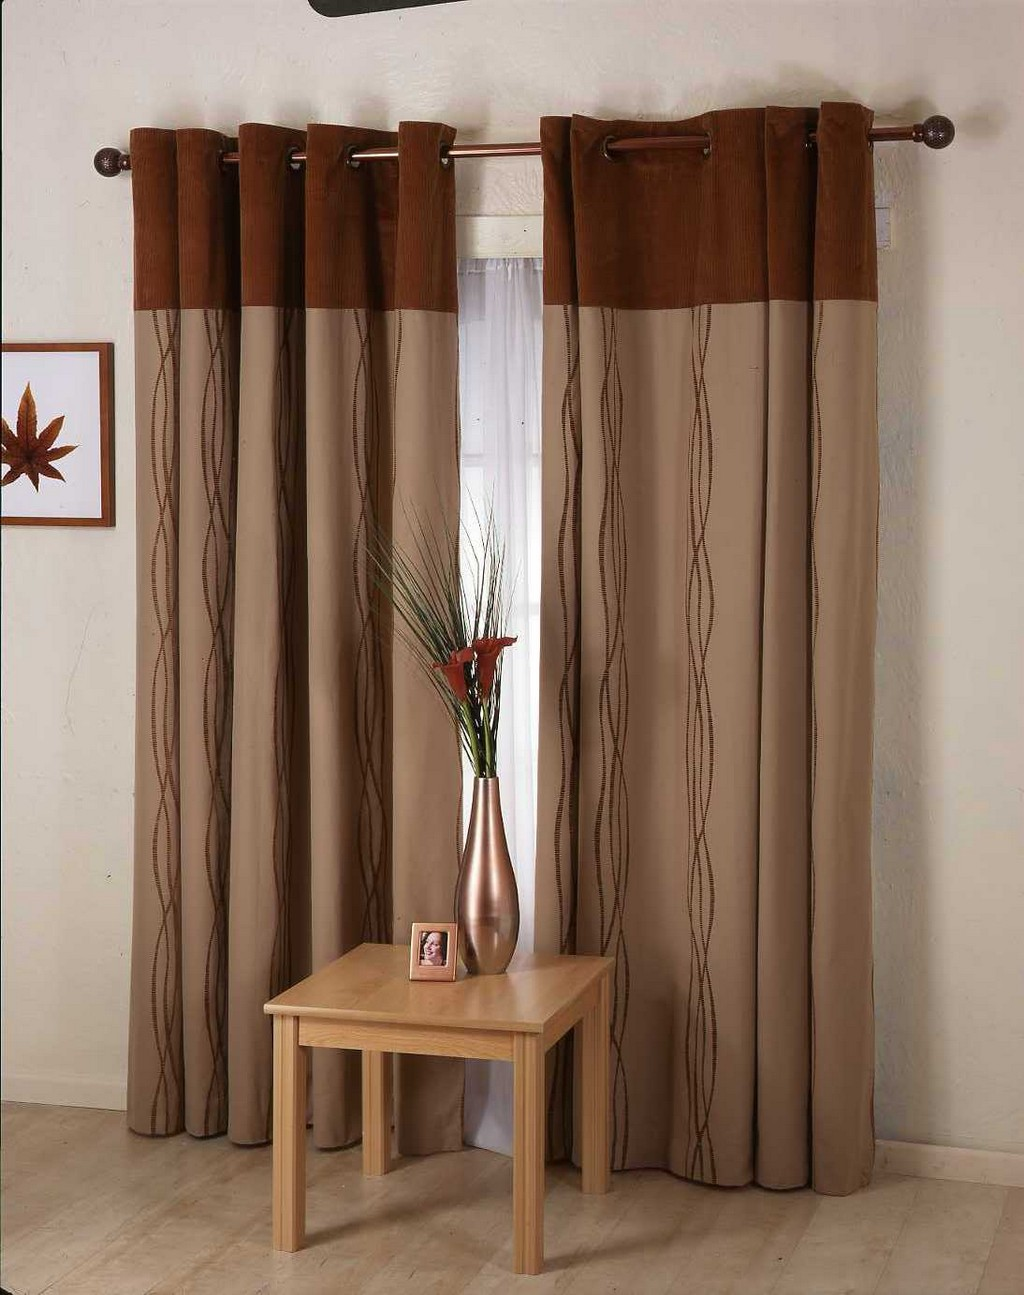 kitchen curtains online, christmas shower curtains, country swag curtains, waverly kitchen curtains